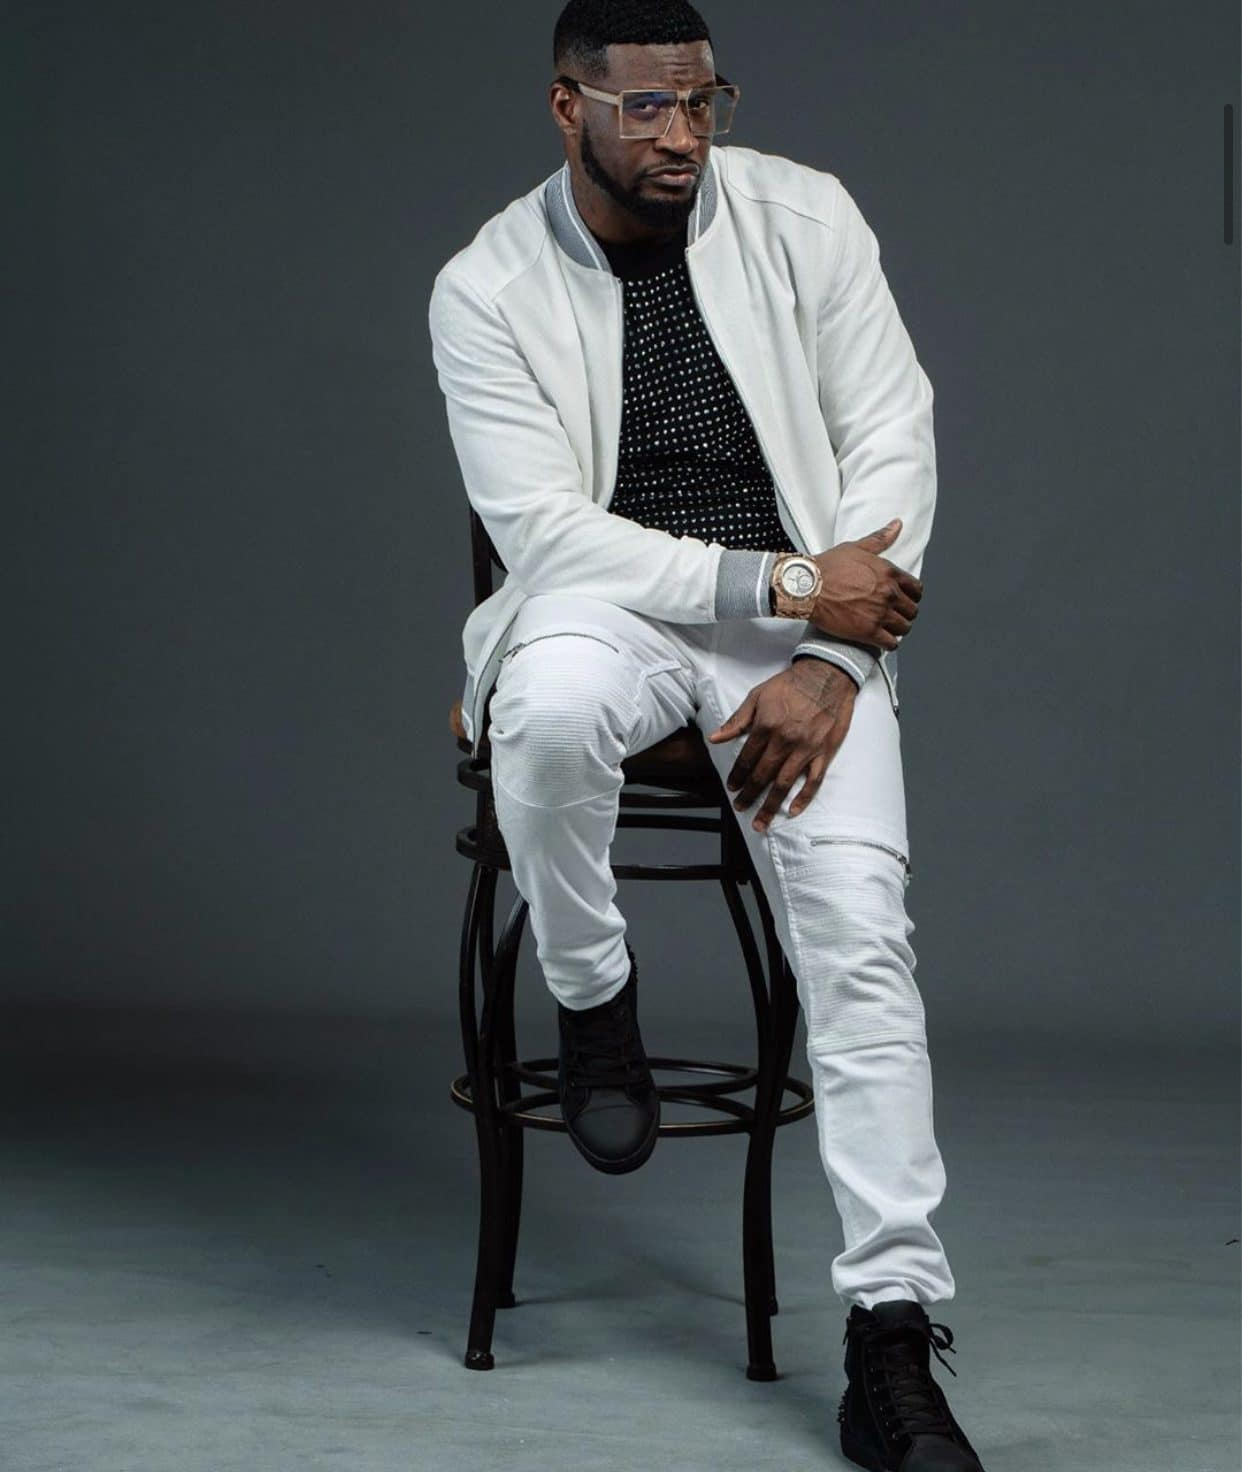 peter-okoye-p-square-zip-republic-clothing